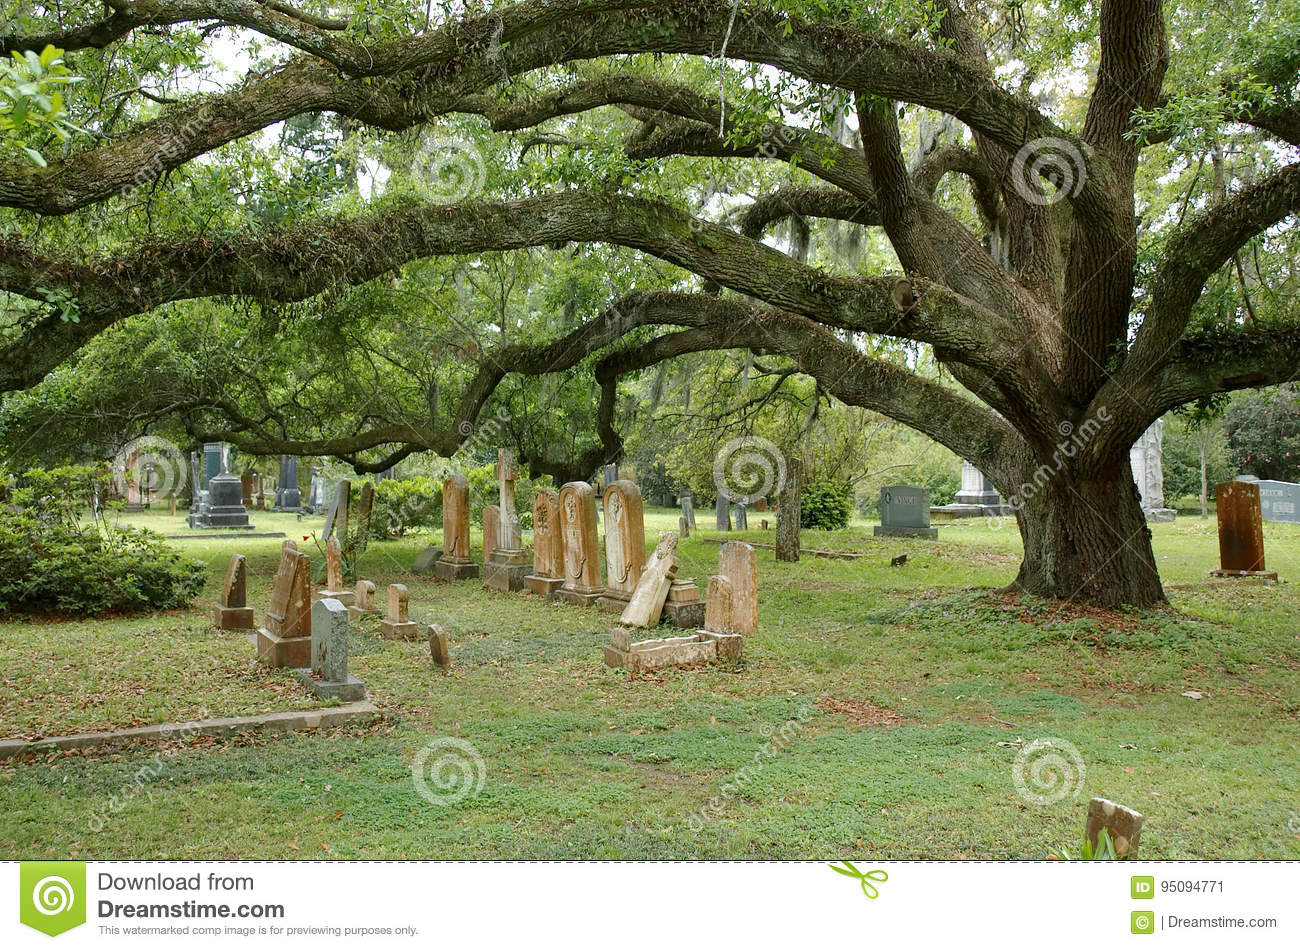 ST. FRANCISVILLE, LOUISIANA, USA - 2009: Tombs and oak trees at the cemetery located in Grace Episcopal Church